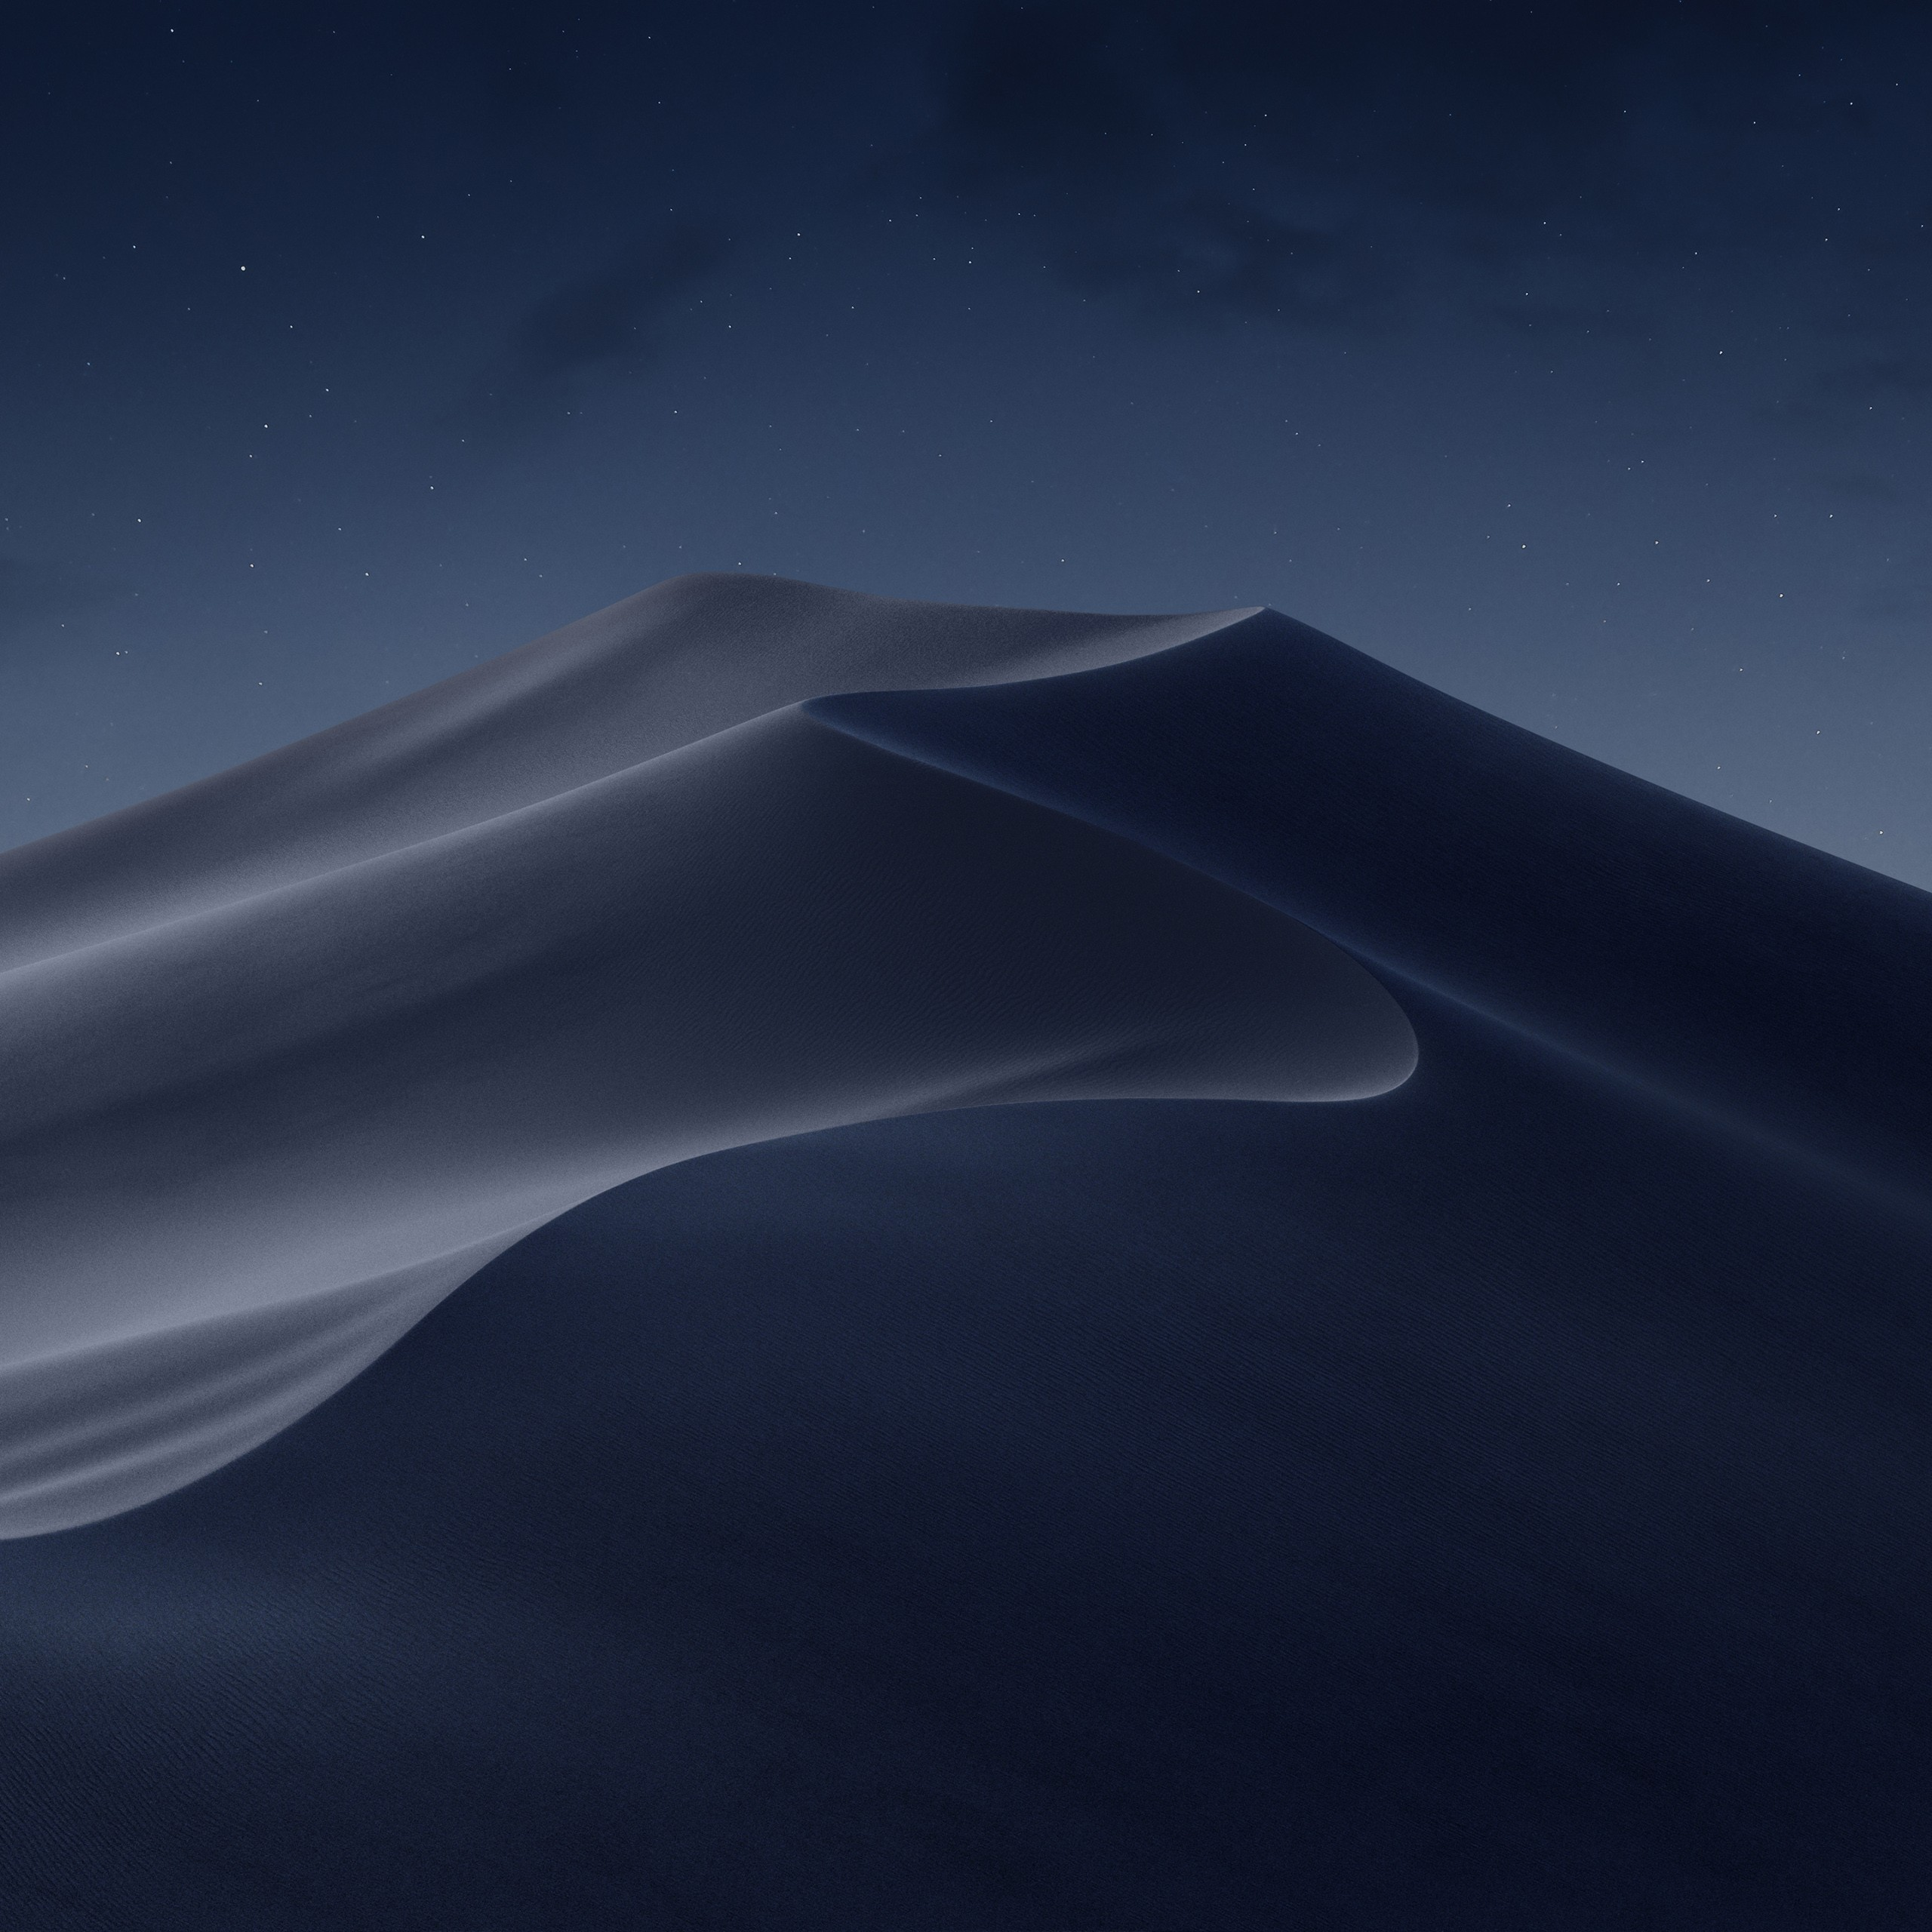 Mac Os Wallpaper Hd Download Macos Mojave Night Desert 5k Wallpapers Hd Wallpapers